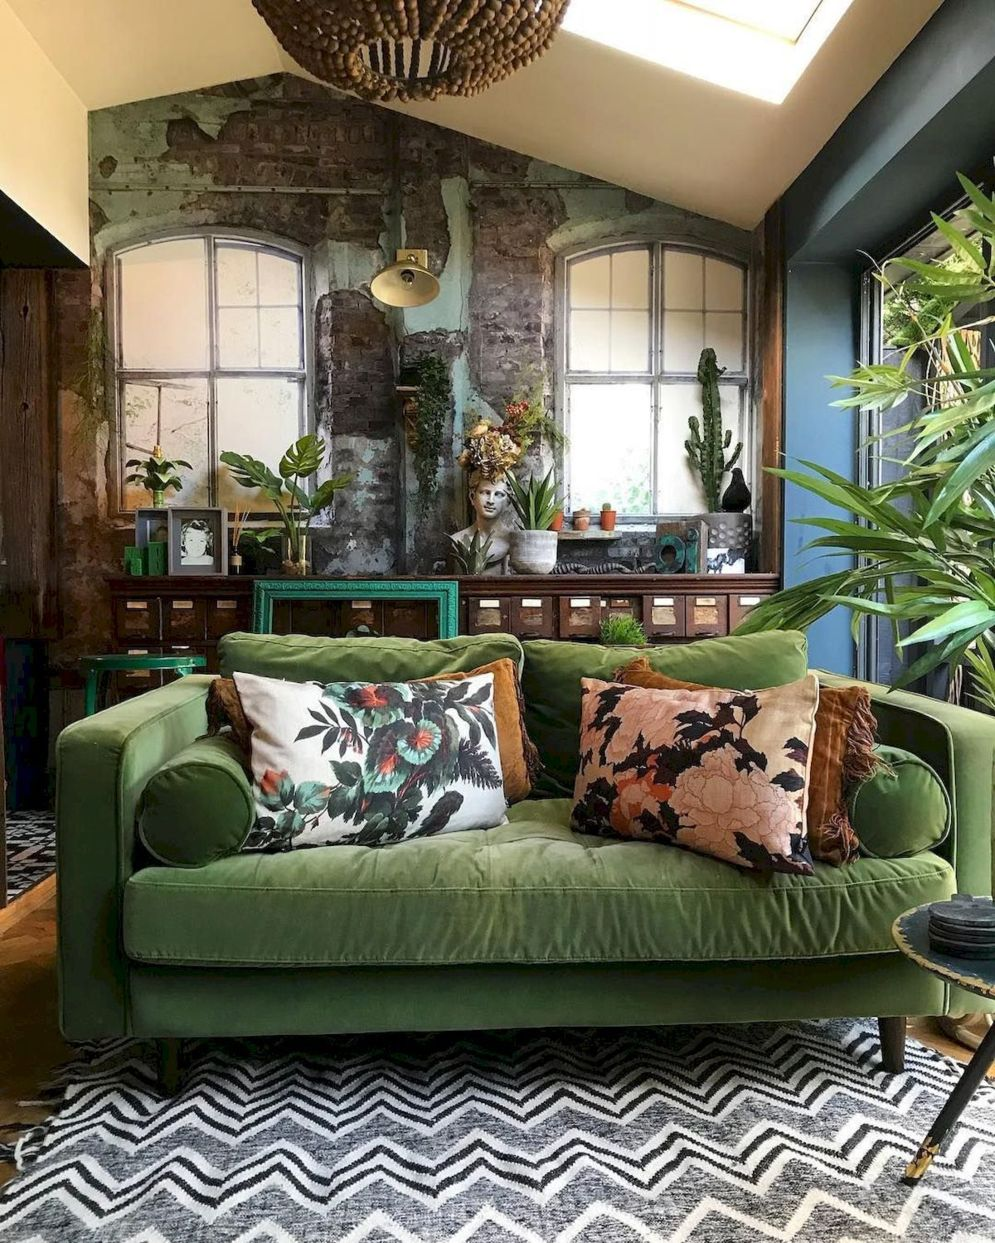 Expressive interior display in multilayering textures and colors showing artsy interior schemes with retro and vintage accents Image 12